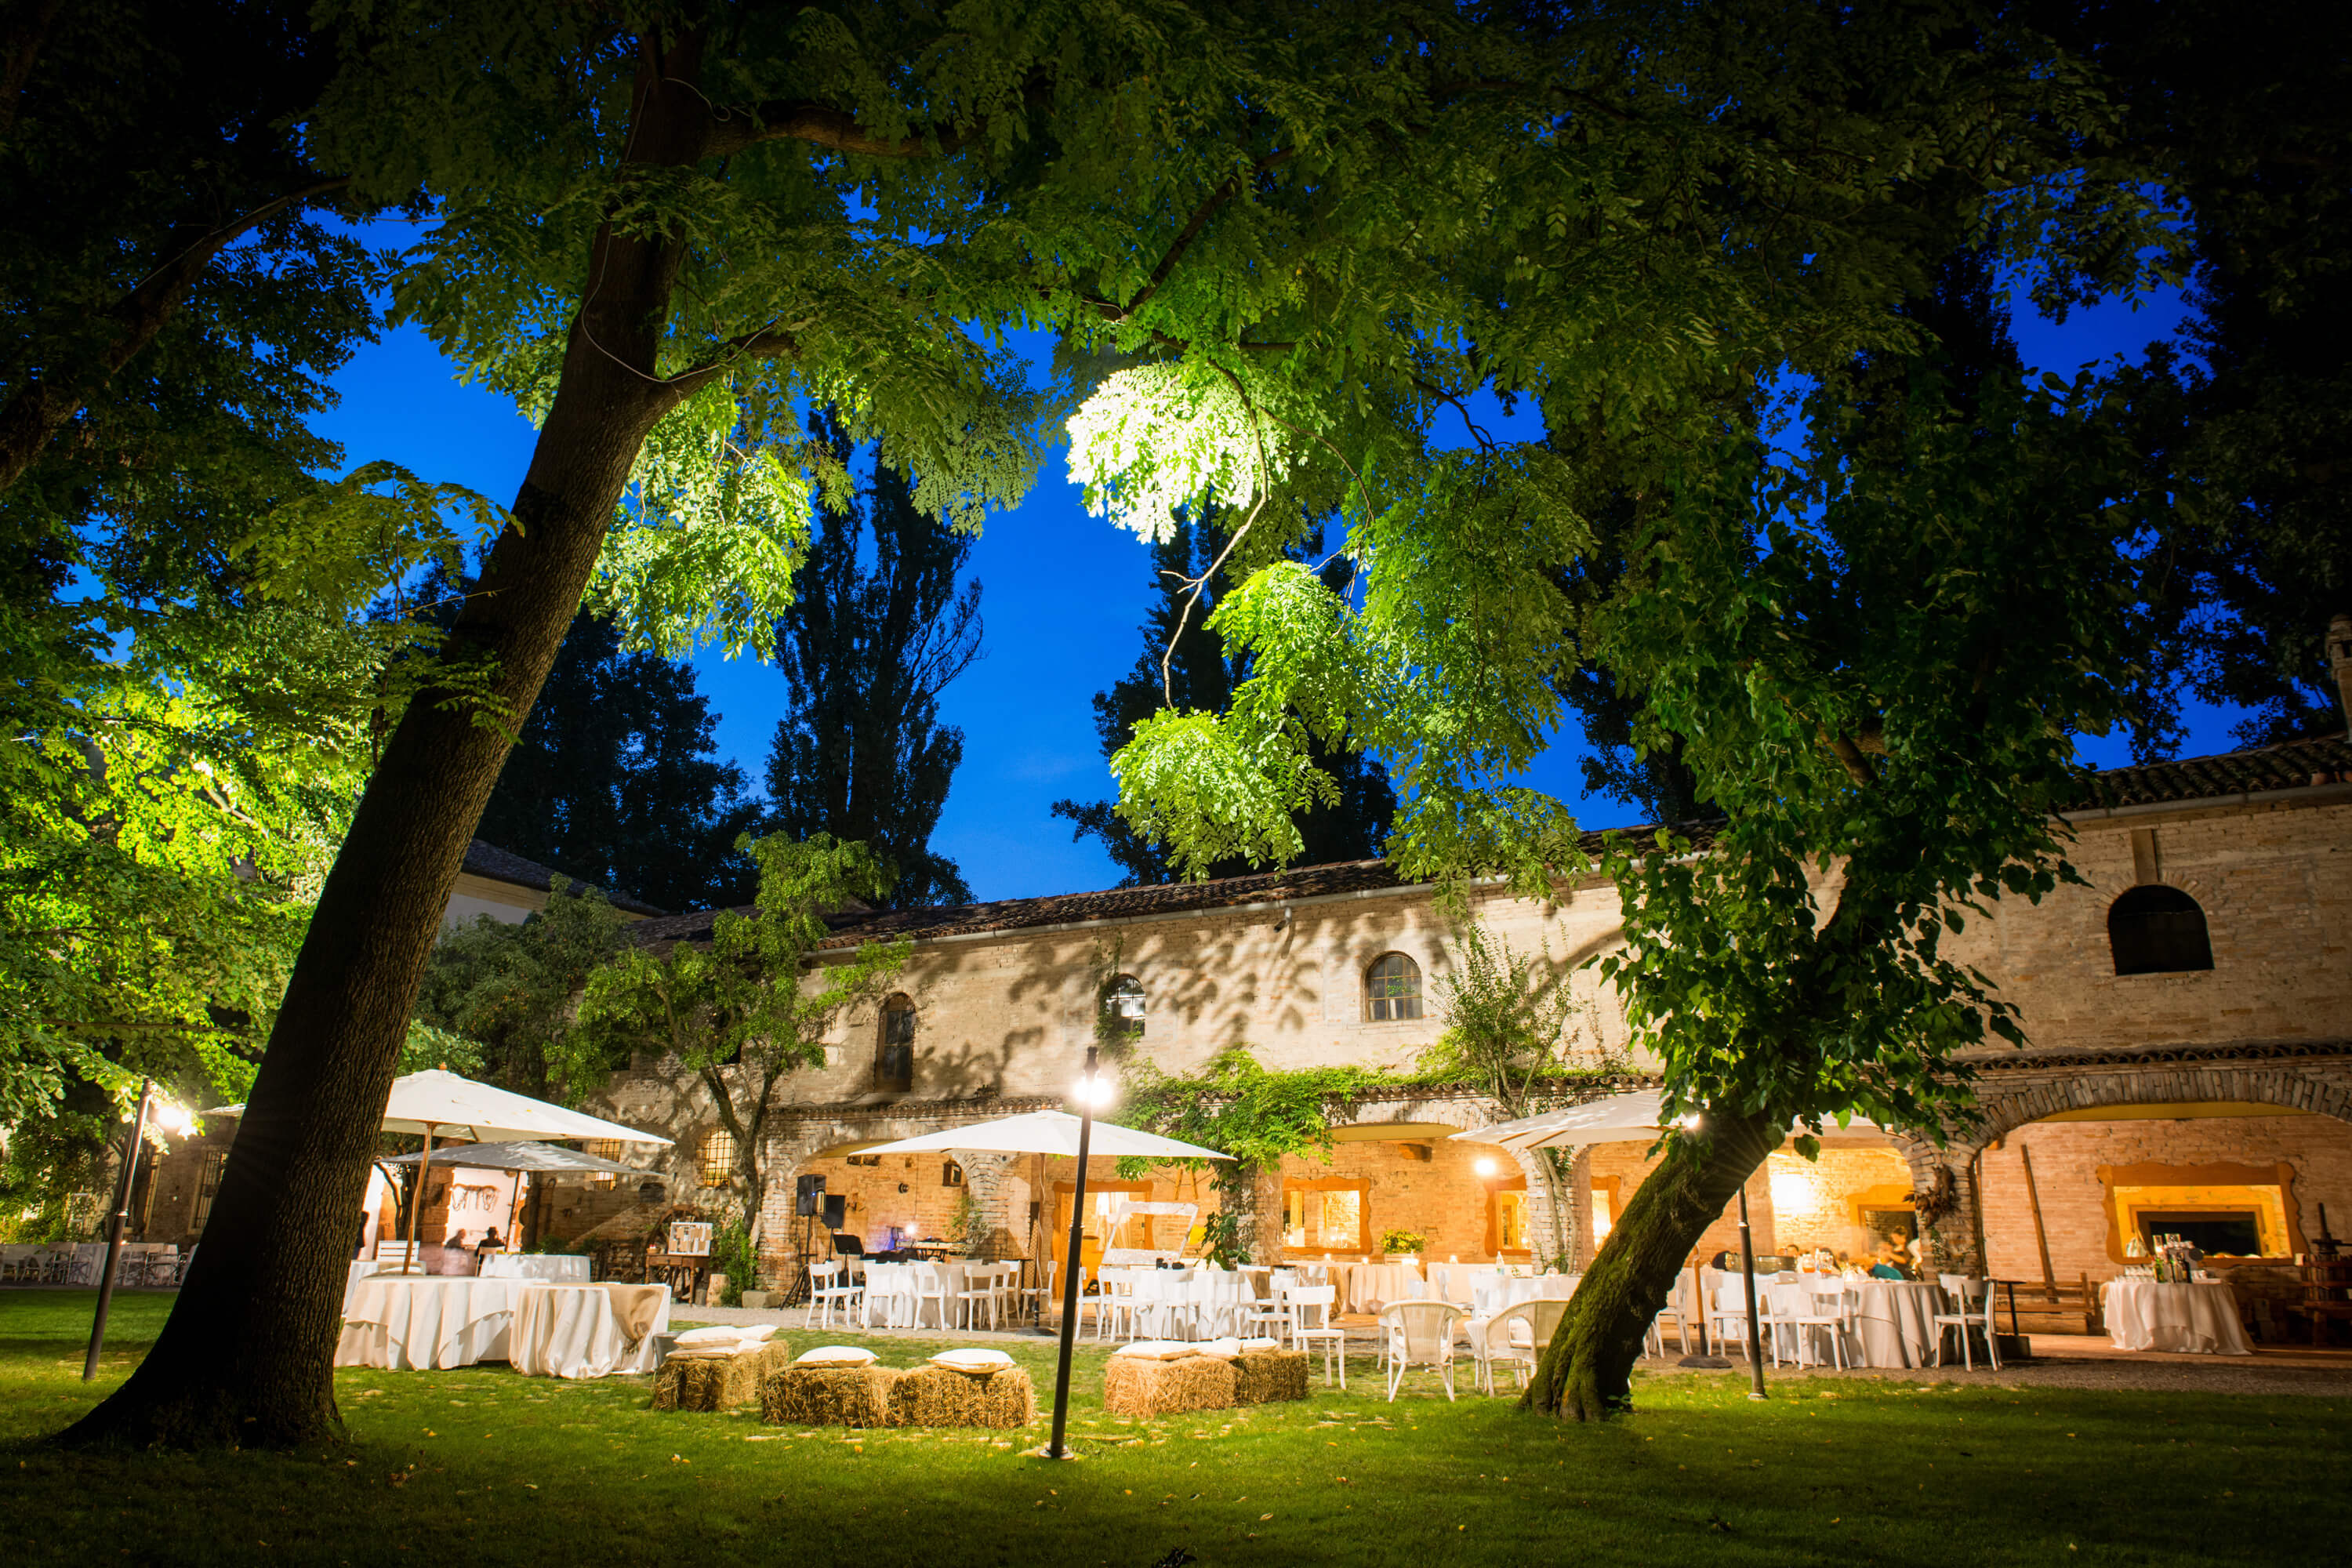 How to choose the right venue for your wedding